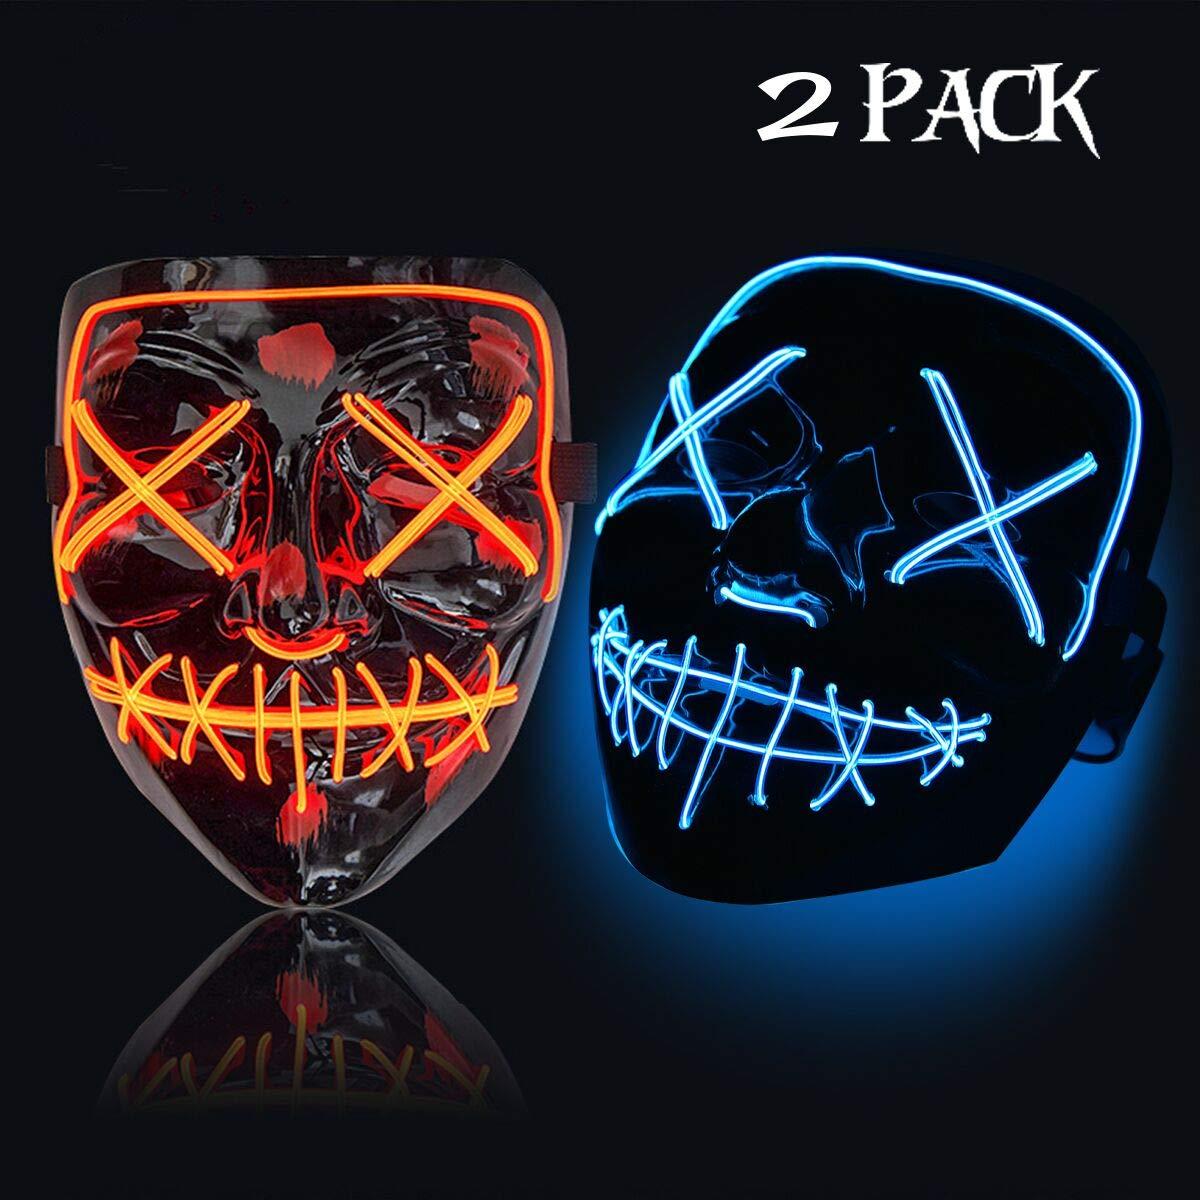 Trentixel 2 Pack LED Halloween Mask Halloween Scary Mask Cosplay Led Costume Mask EL Wire Light up for Halloween Festival Party